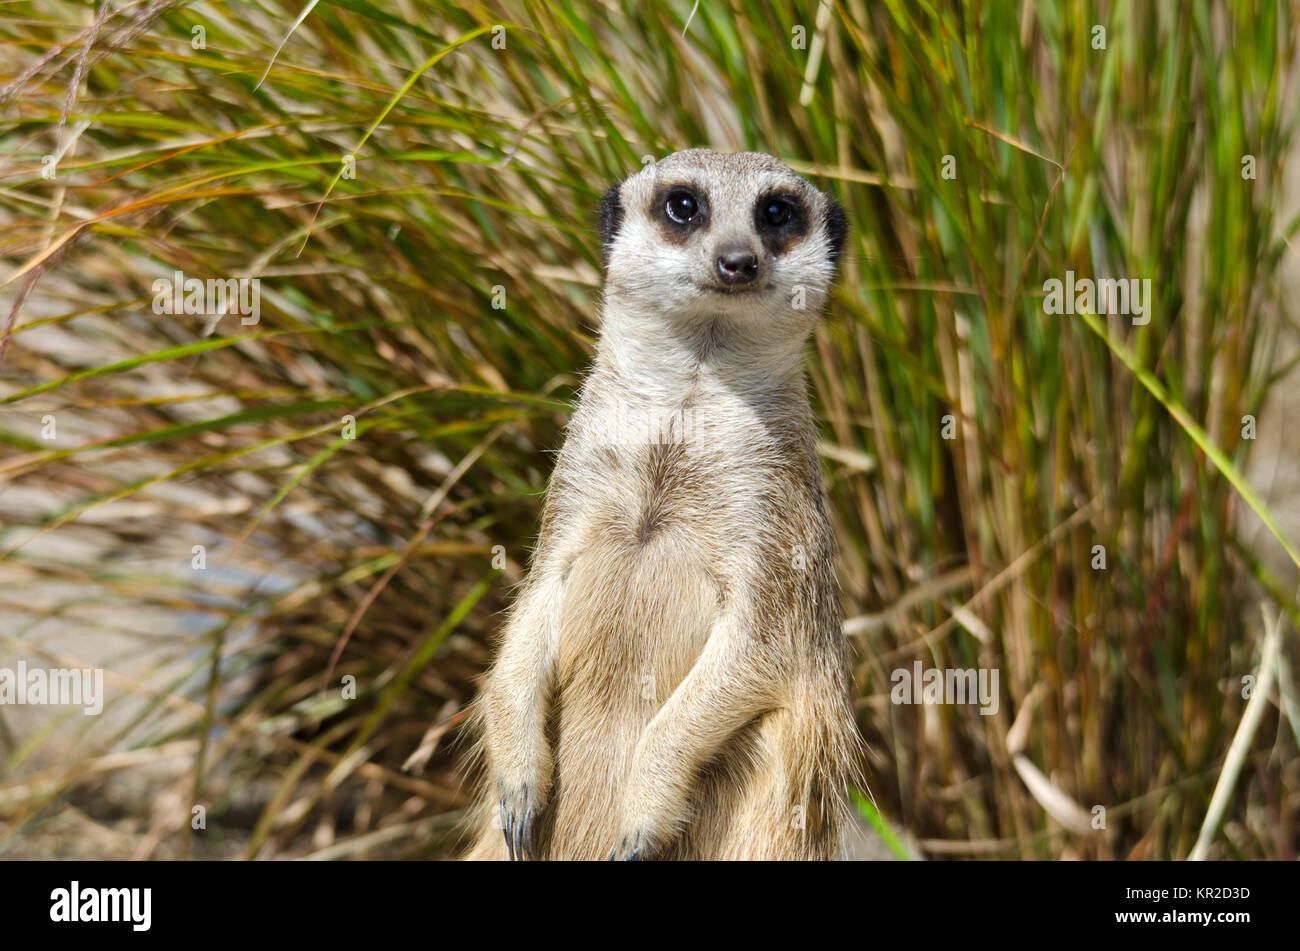 Meerkat Sitting on Guard - Stock Image